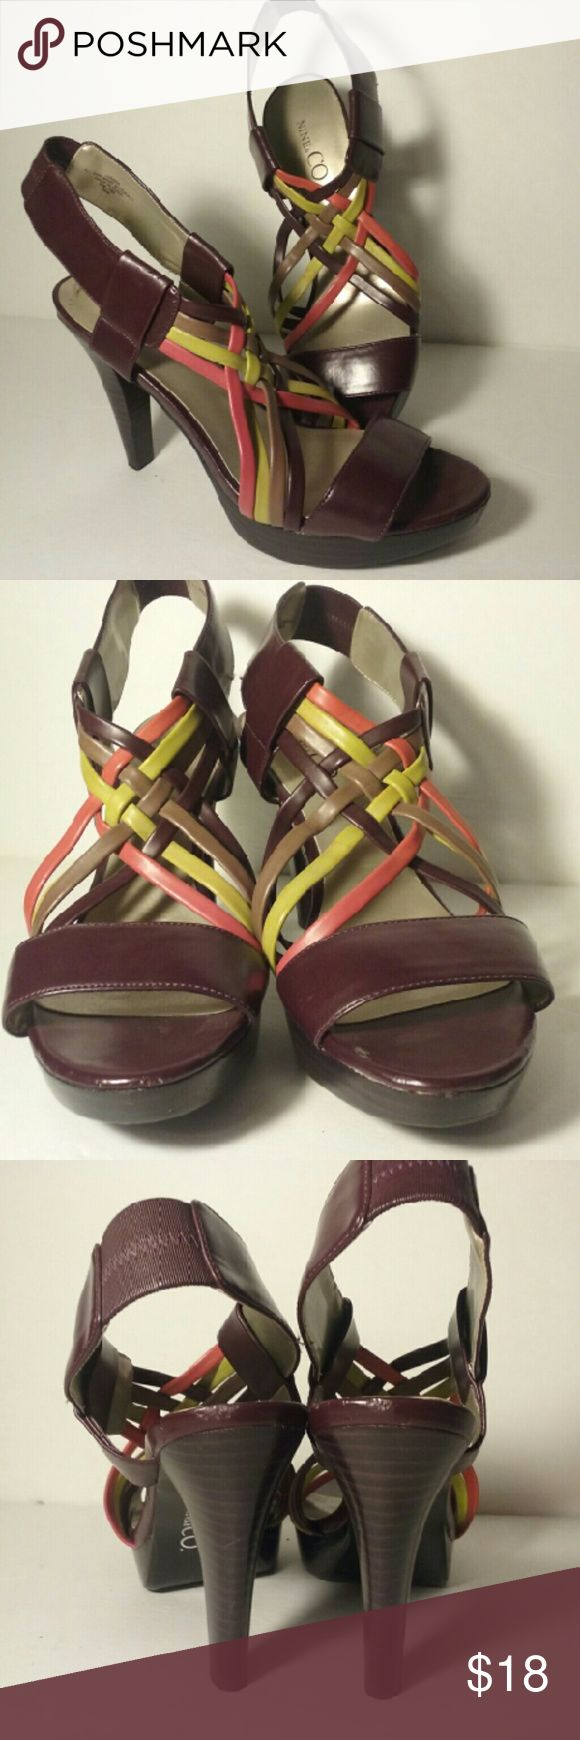 "EUC Nine & Co brown green strappy heel 6.5M Delightful maroon heels with sage and coral accents. Vegan leather, 4"" heel on a 1"" platform. EUC sz 6.5 Nine & Co. Shoes"